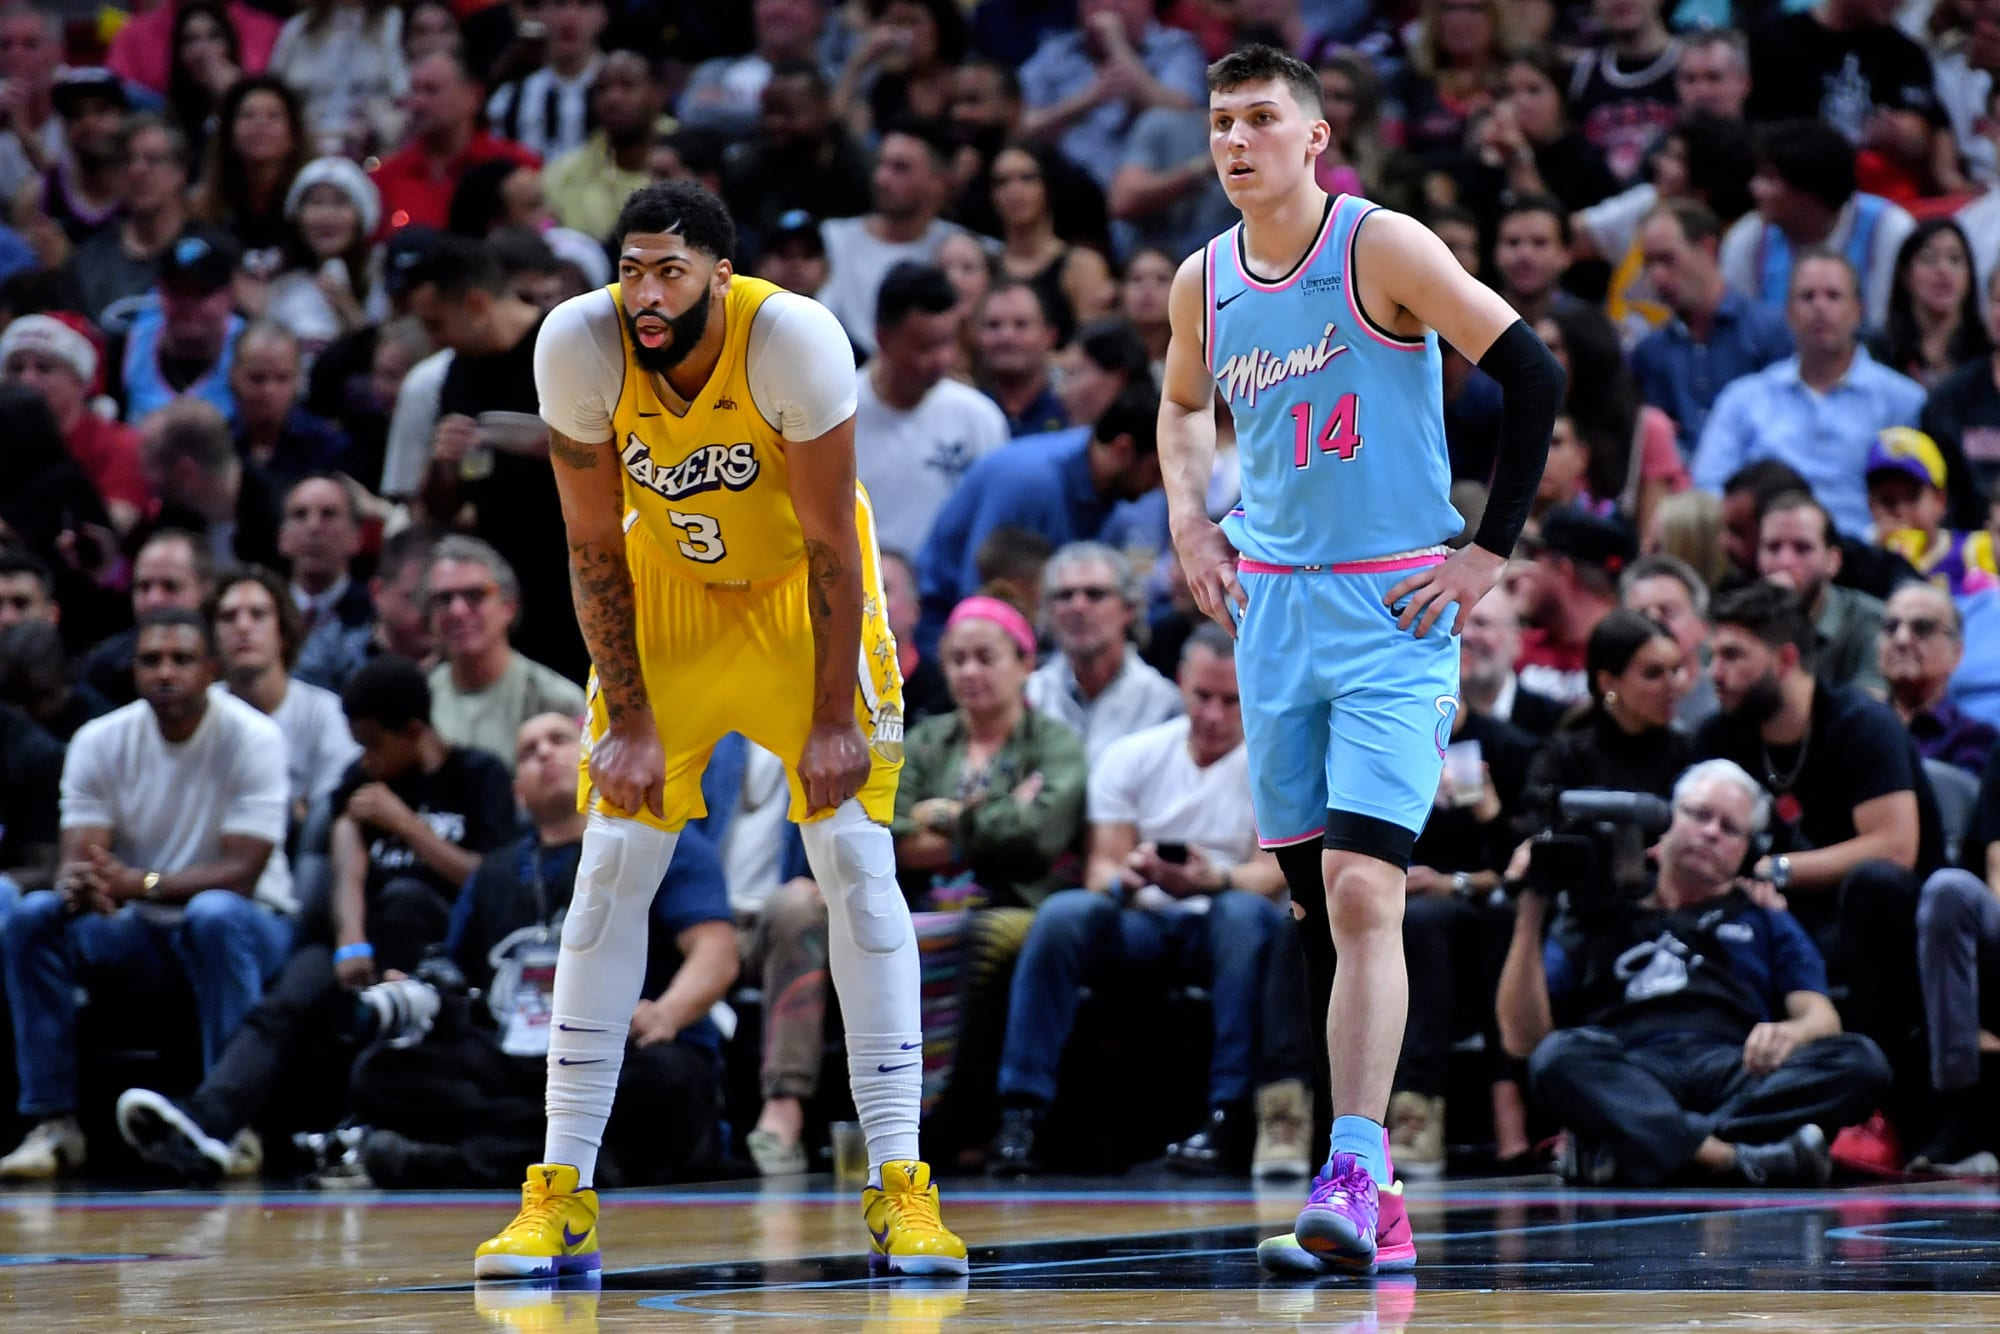 NBA: Way-too-early prediction of the 16 playoff teams for the 2020-21 season